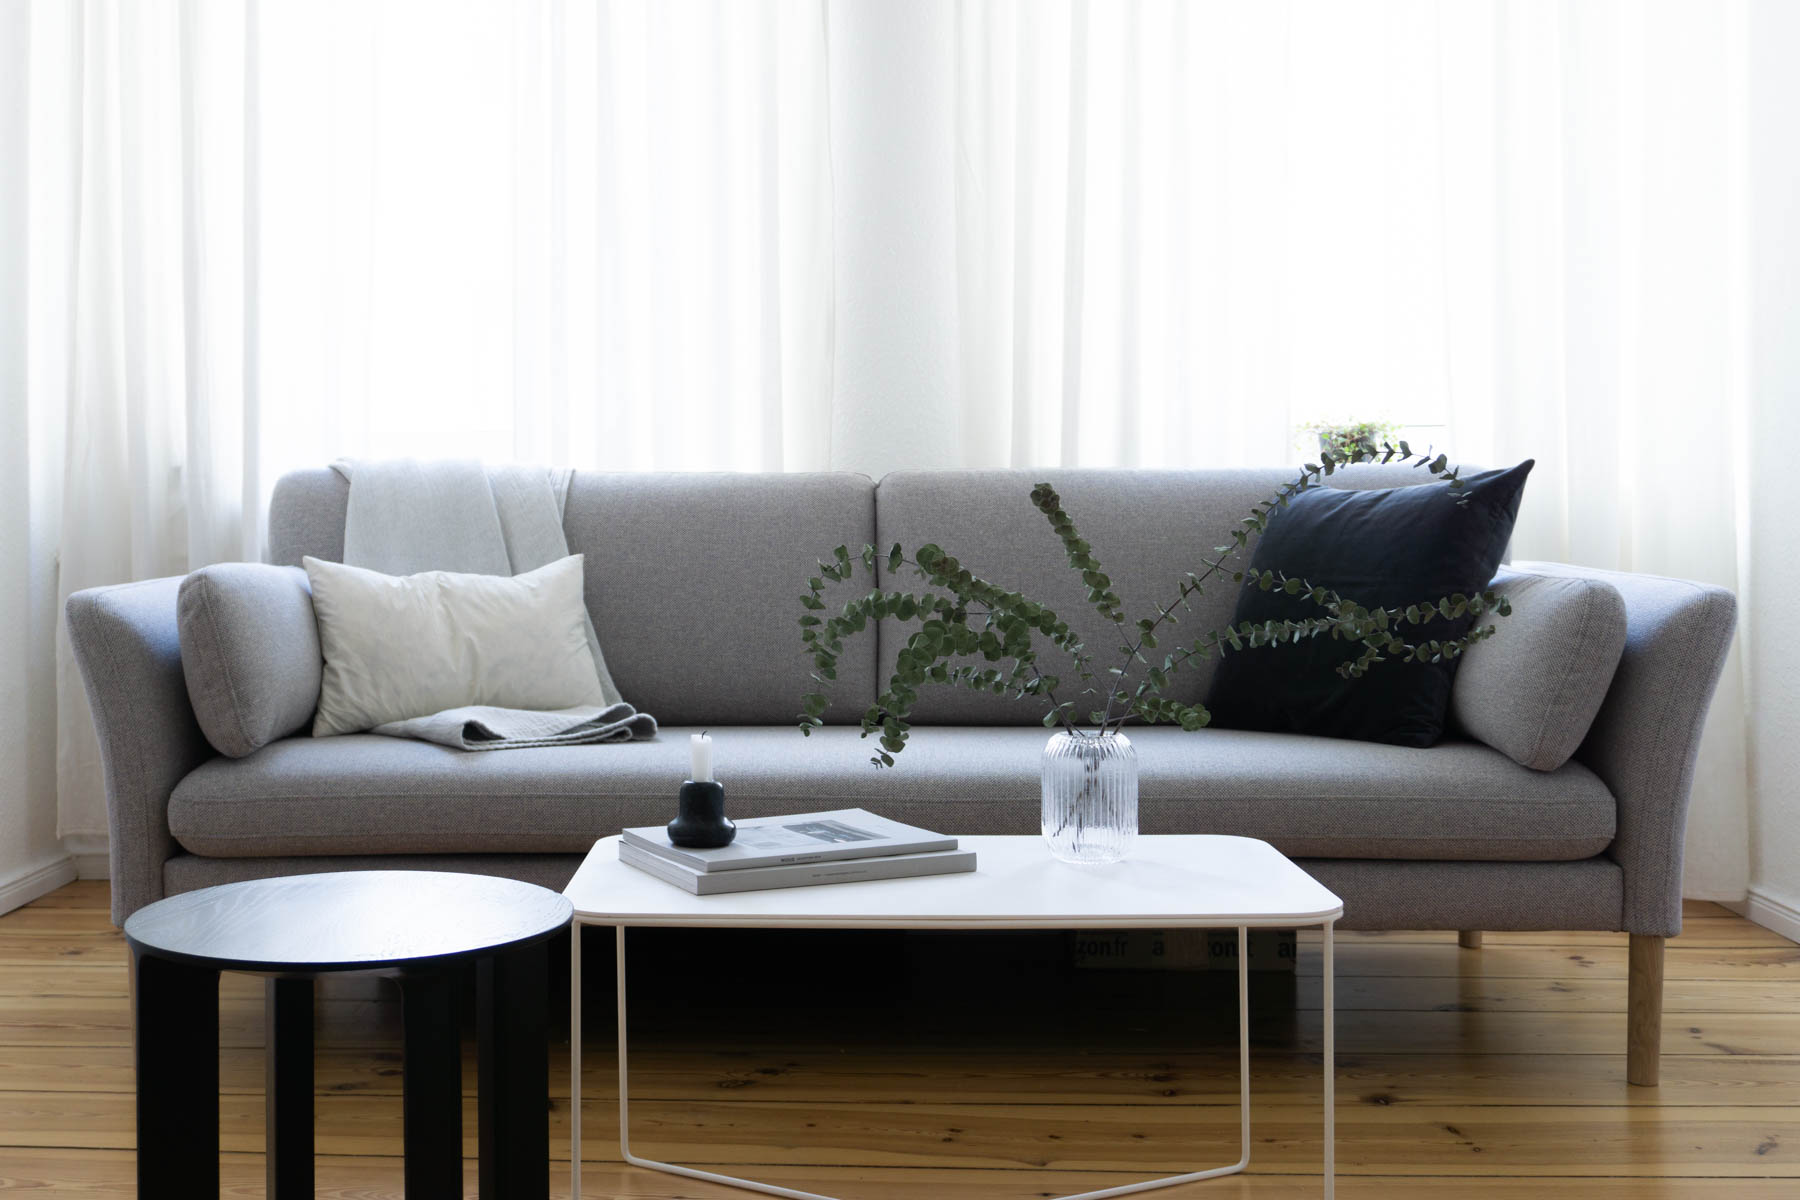 Sofa Berlin Design Our Berlin Living Room Bright Scandinavian Rg Daily